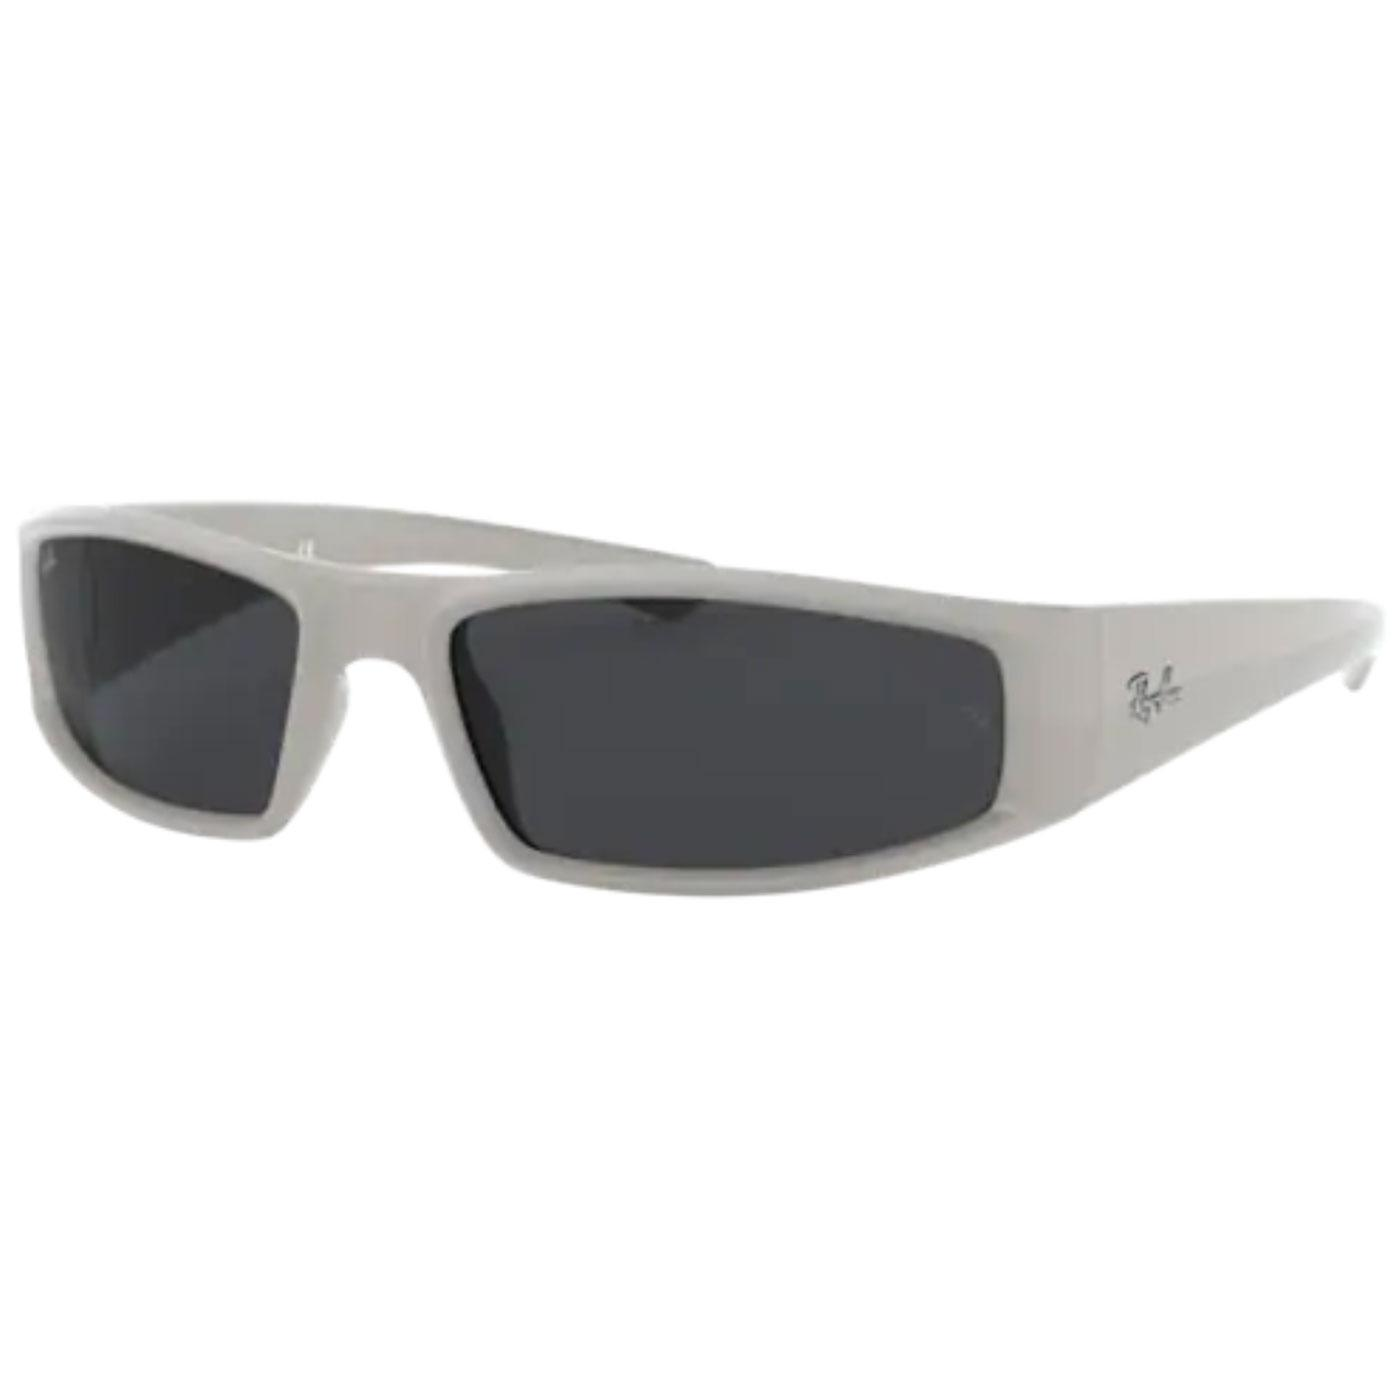 RAY-BAN RB4335 Retro Wrap Round Sunglasses (LG)